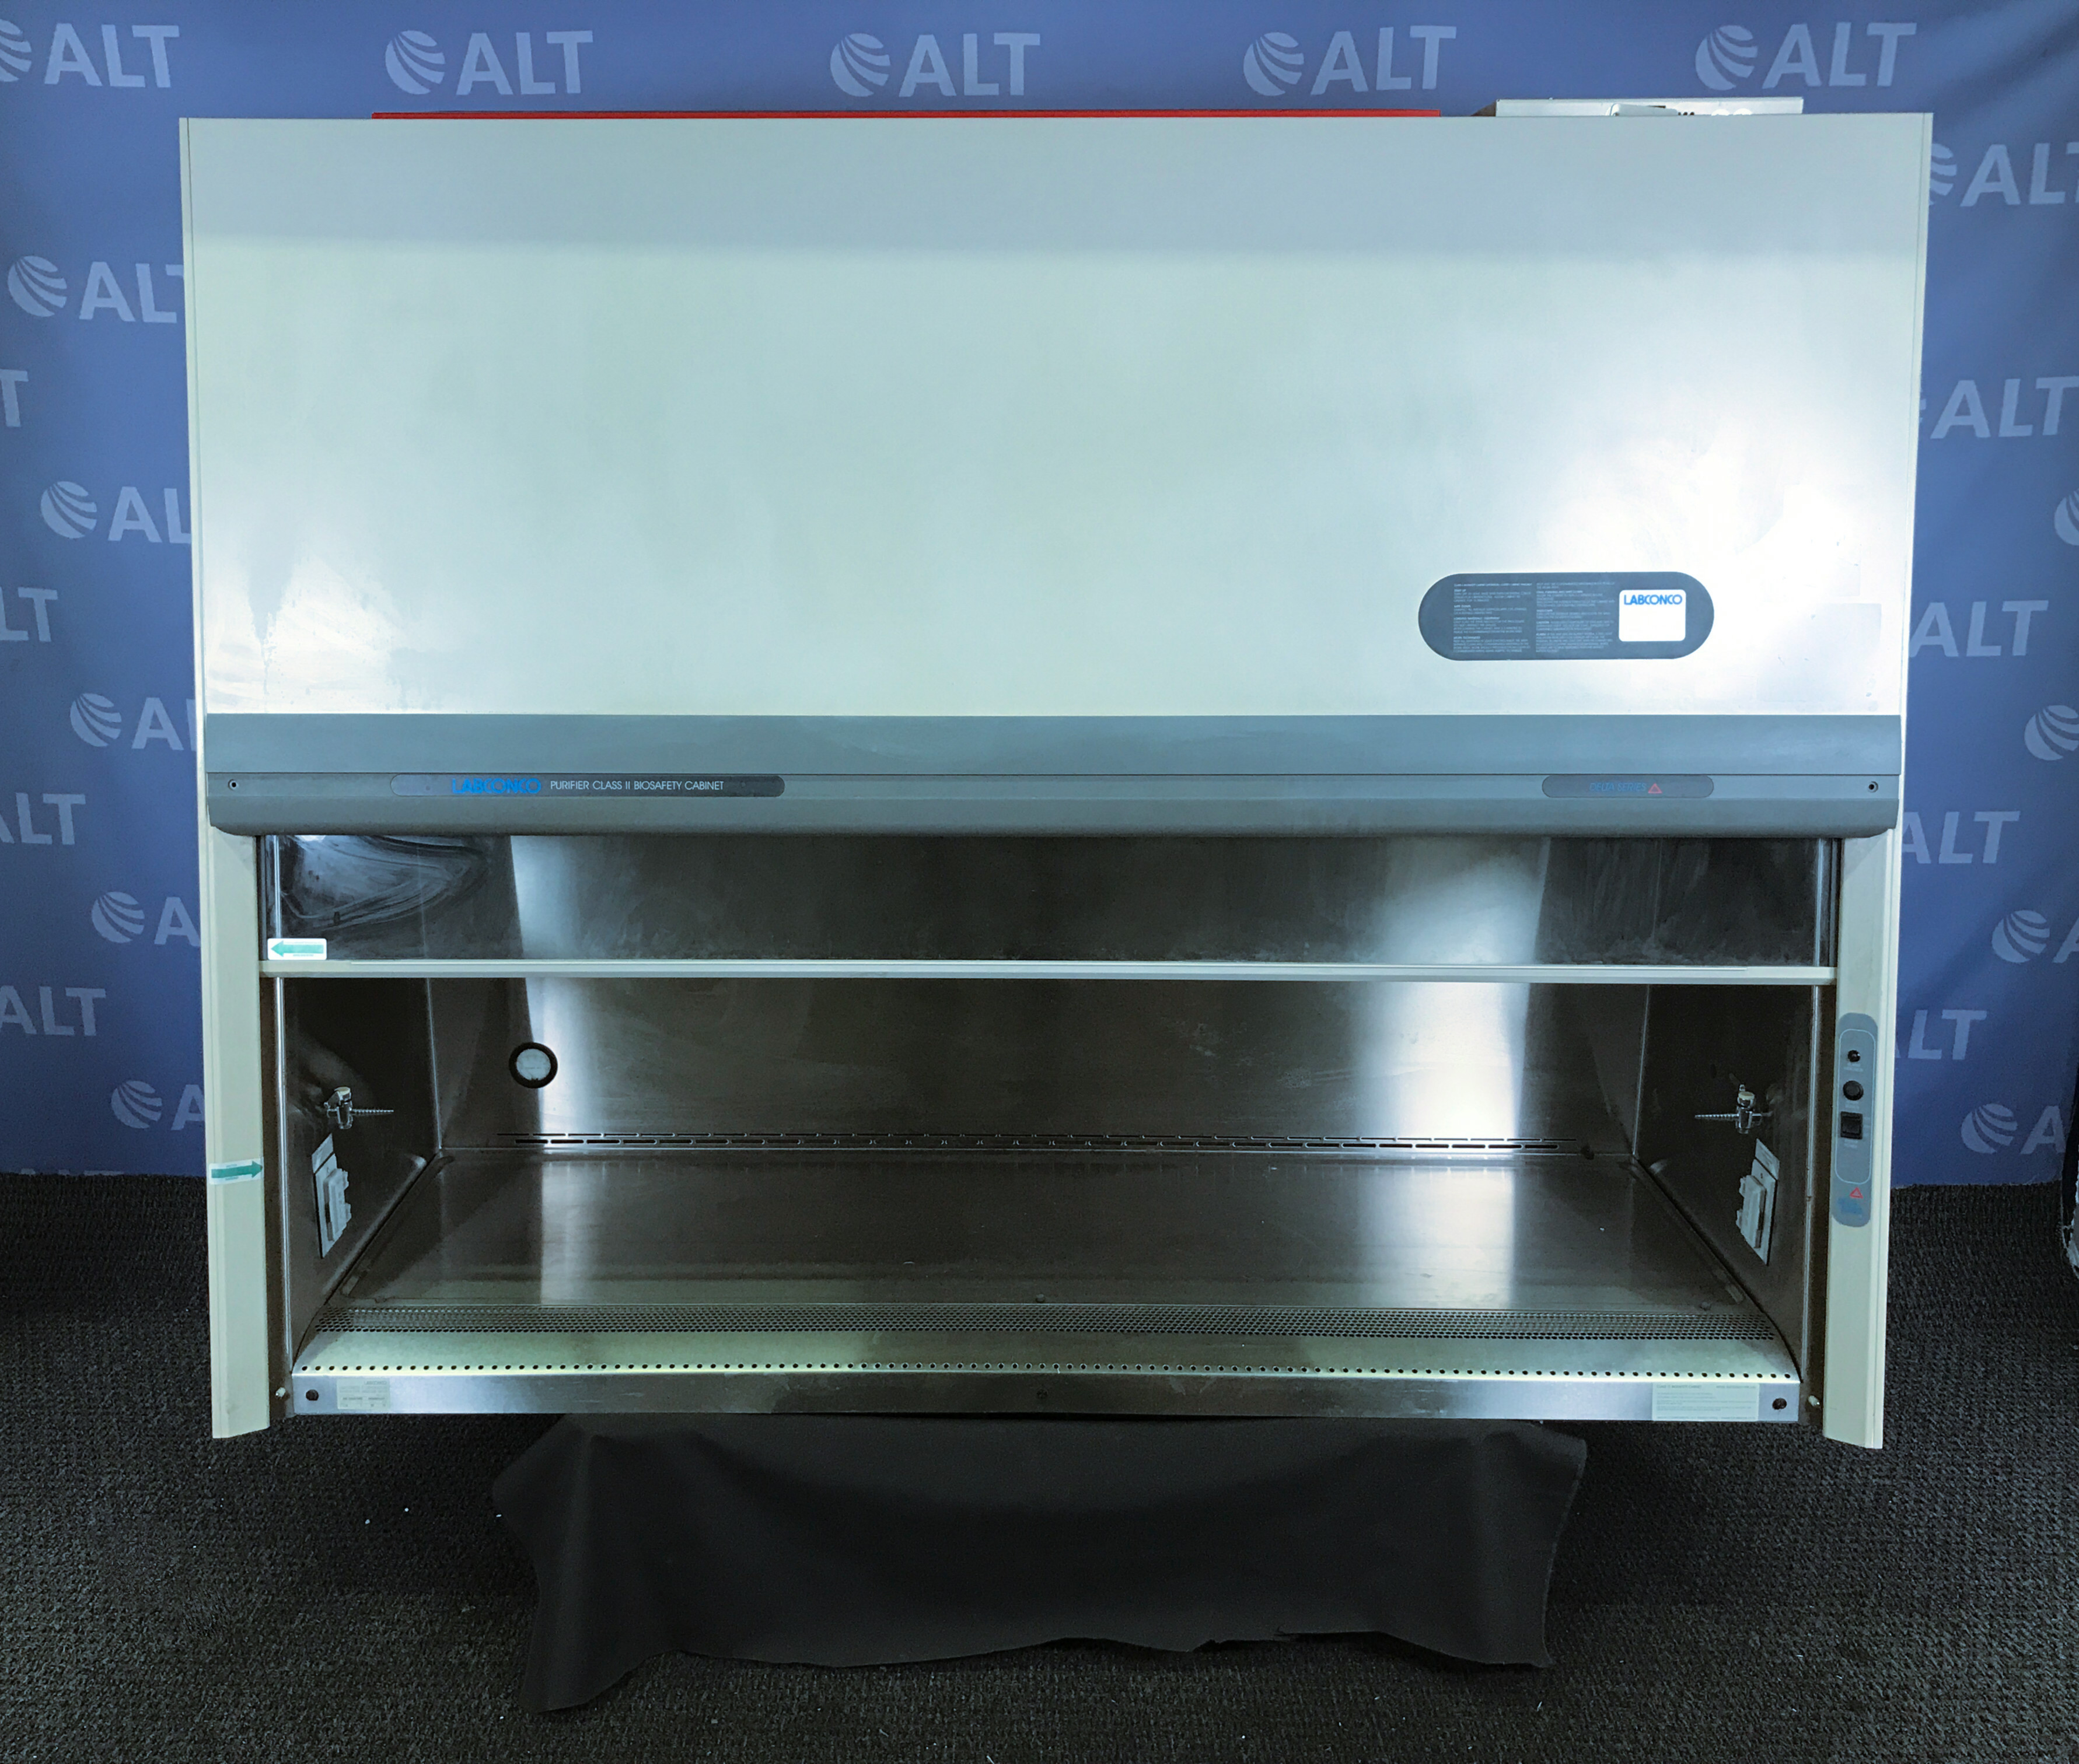 Labconco 6' Delta Series Purifier Class II Biosafety Cabinet CAT: 36213043726 Image